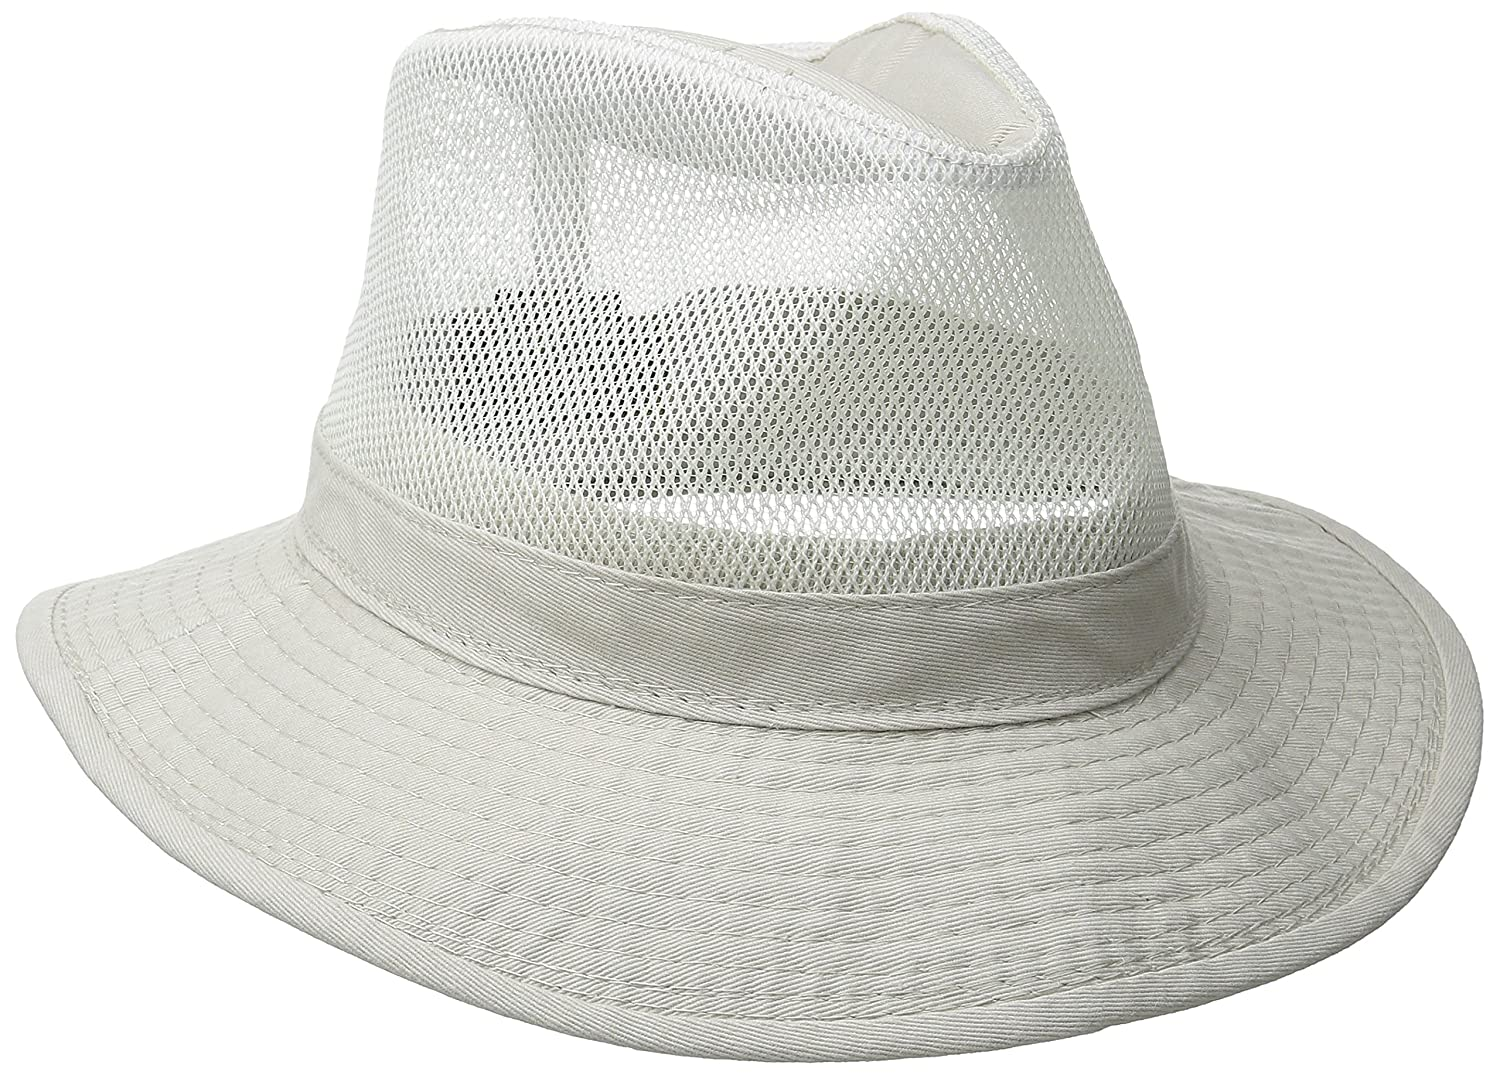 d72c541c8a077 Dorfman Pacific Men s Garment Washed Twill Safari Hat With Mesh ...